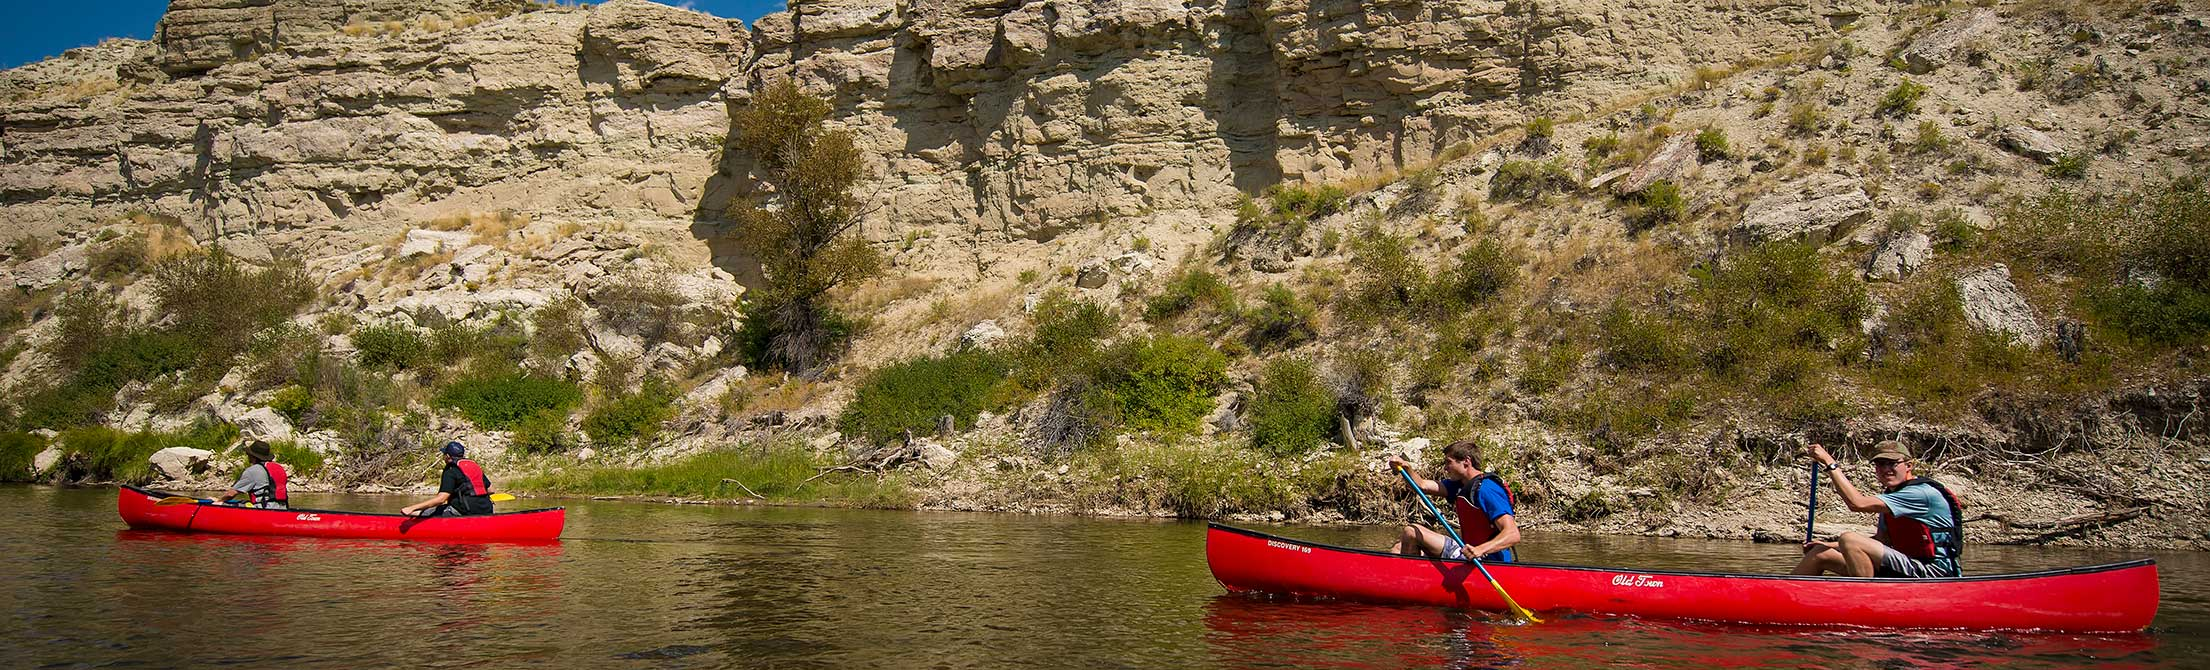 Students from the University of Wyoming enjoy a trip on the Platte River, one excursion possible in the Outdoor Leadership FIG.